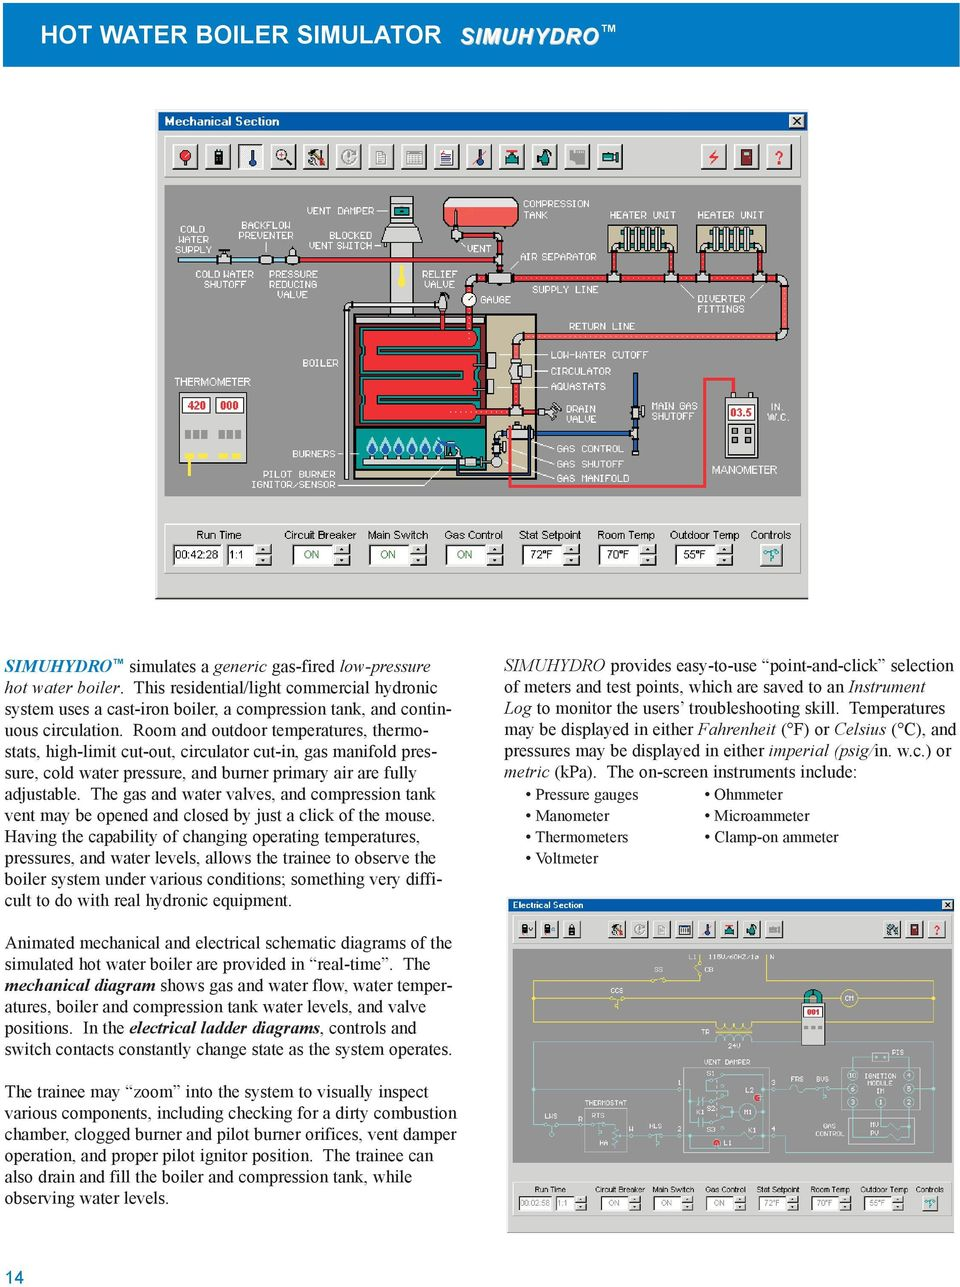 SIMULATION SOFTWARE FOR HVACR TRAINING. Simulator Training Systems - PDF